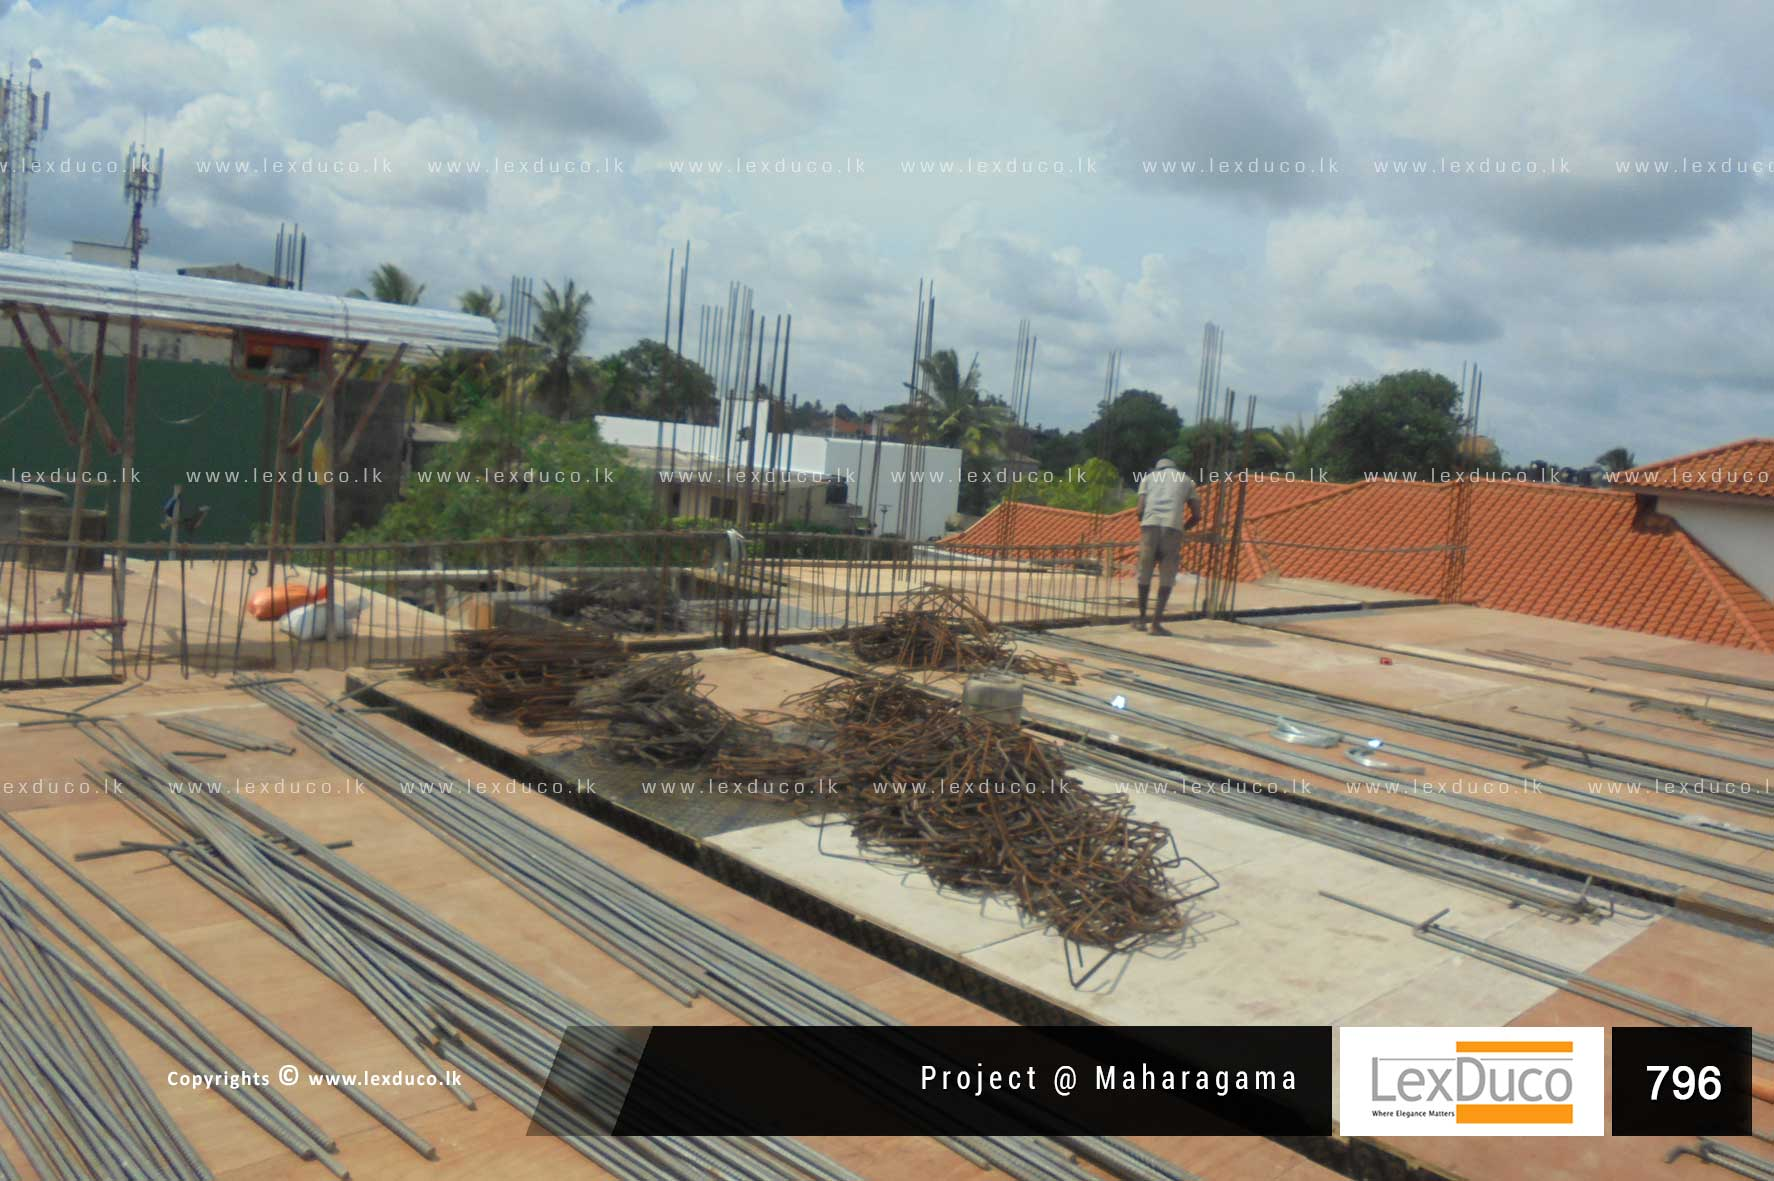 Commercial Building Project at Maharagama | Lex Duco